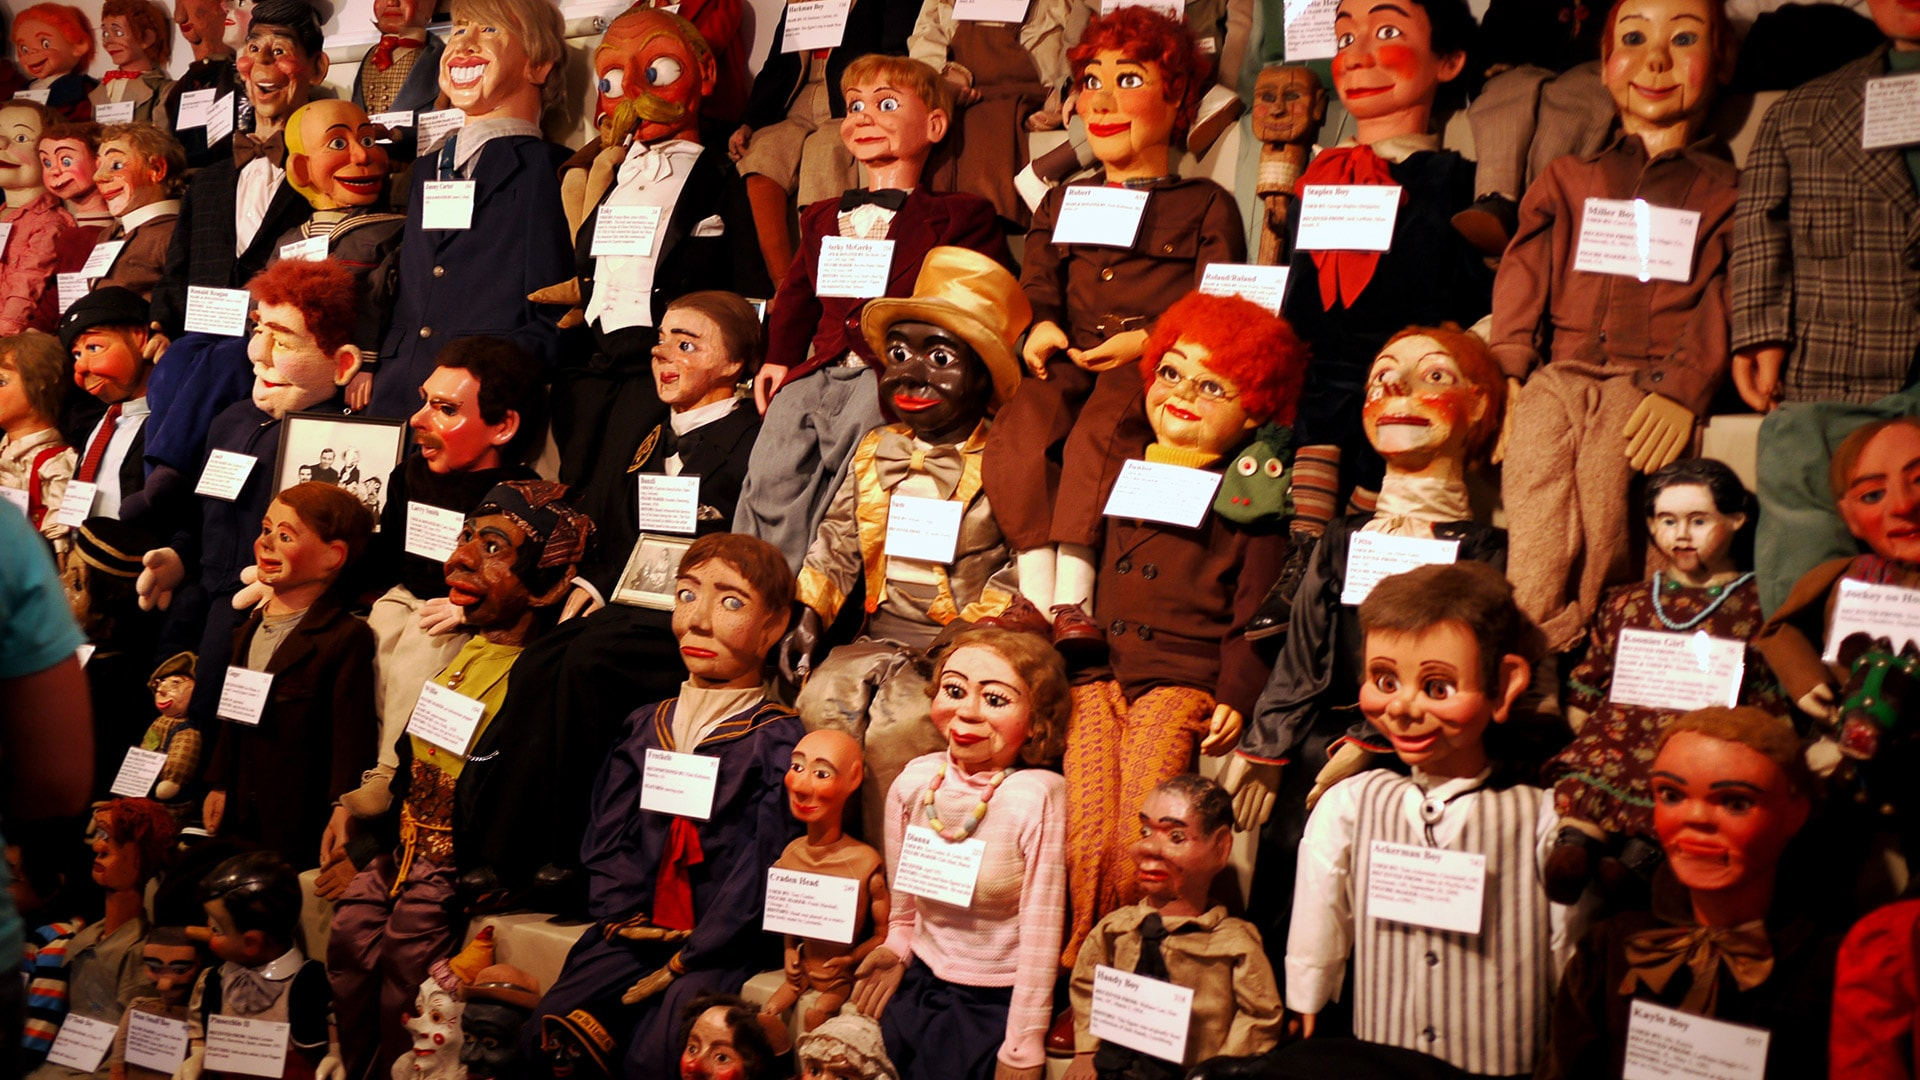 Vent Haven Ventriloquism Museum exhibition. Photo by 5chw4r7z via Flickr